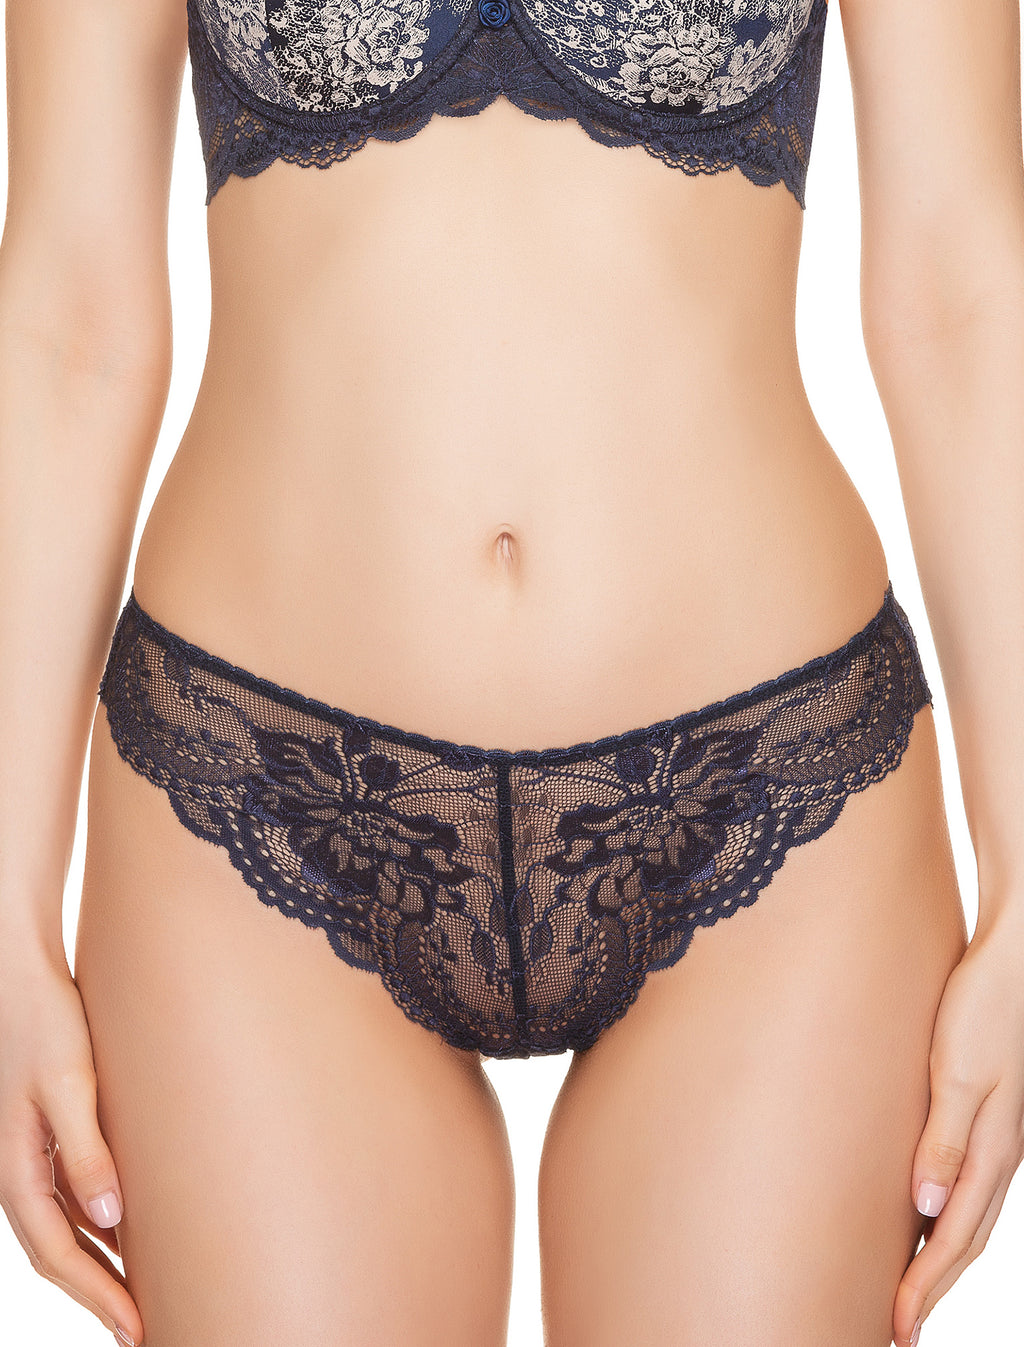 Lace Dream Lace Brazilian Panties